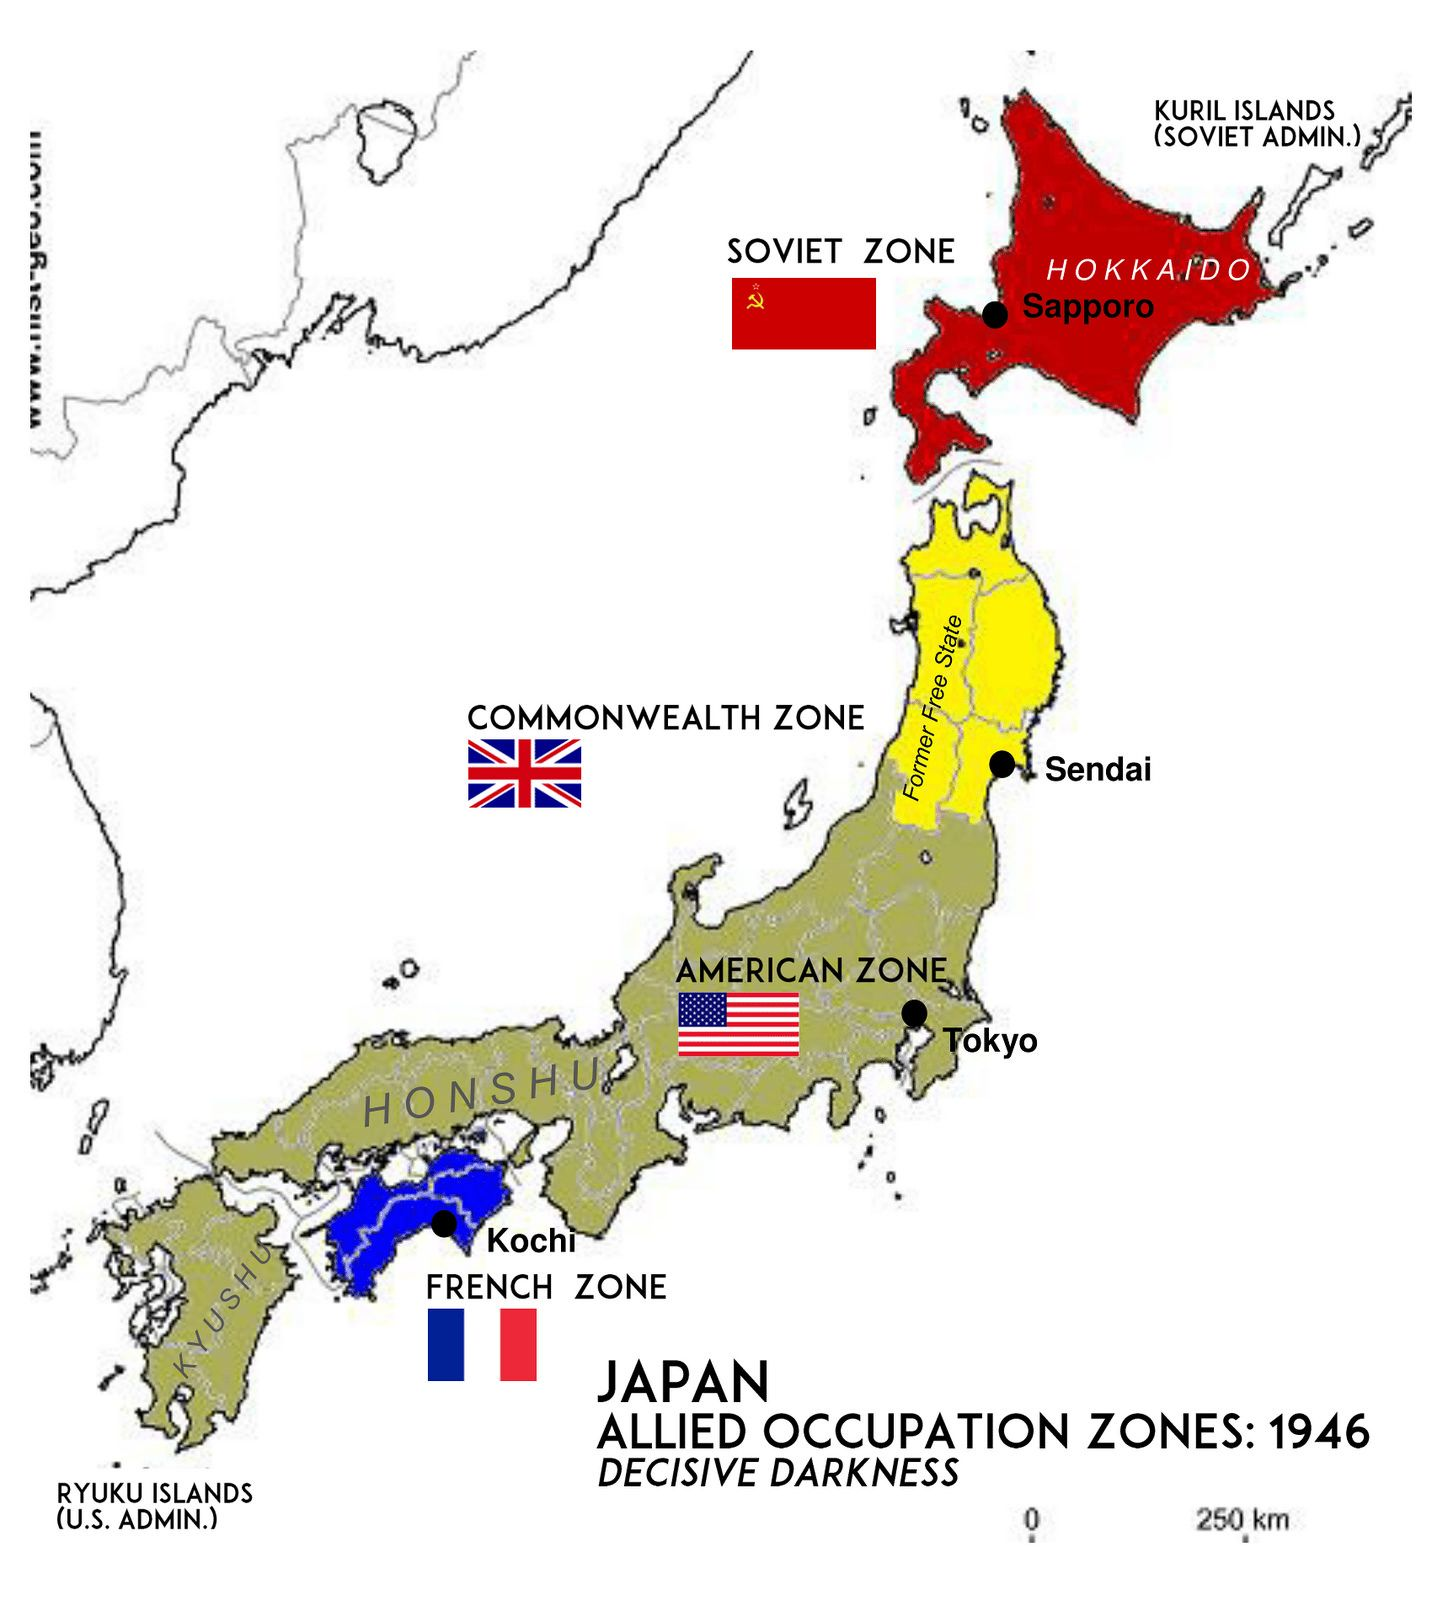 the history of the us occupation of japan The occupation of japan was a strange and unique time the united states, although their occupation has ended, never truly left japan, keeping military bases within the country even so, these two first world powers have kept good relations since the end of world war ii.